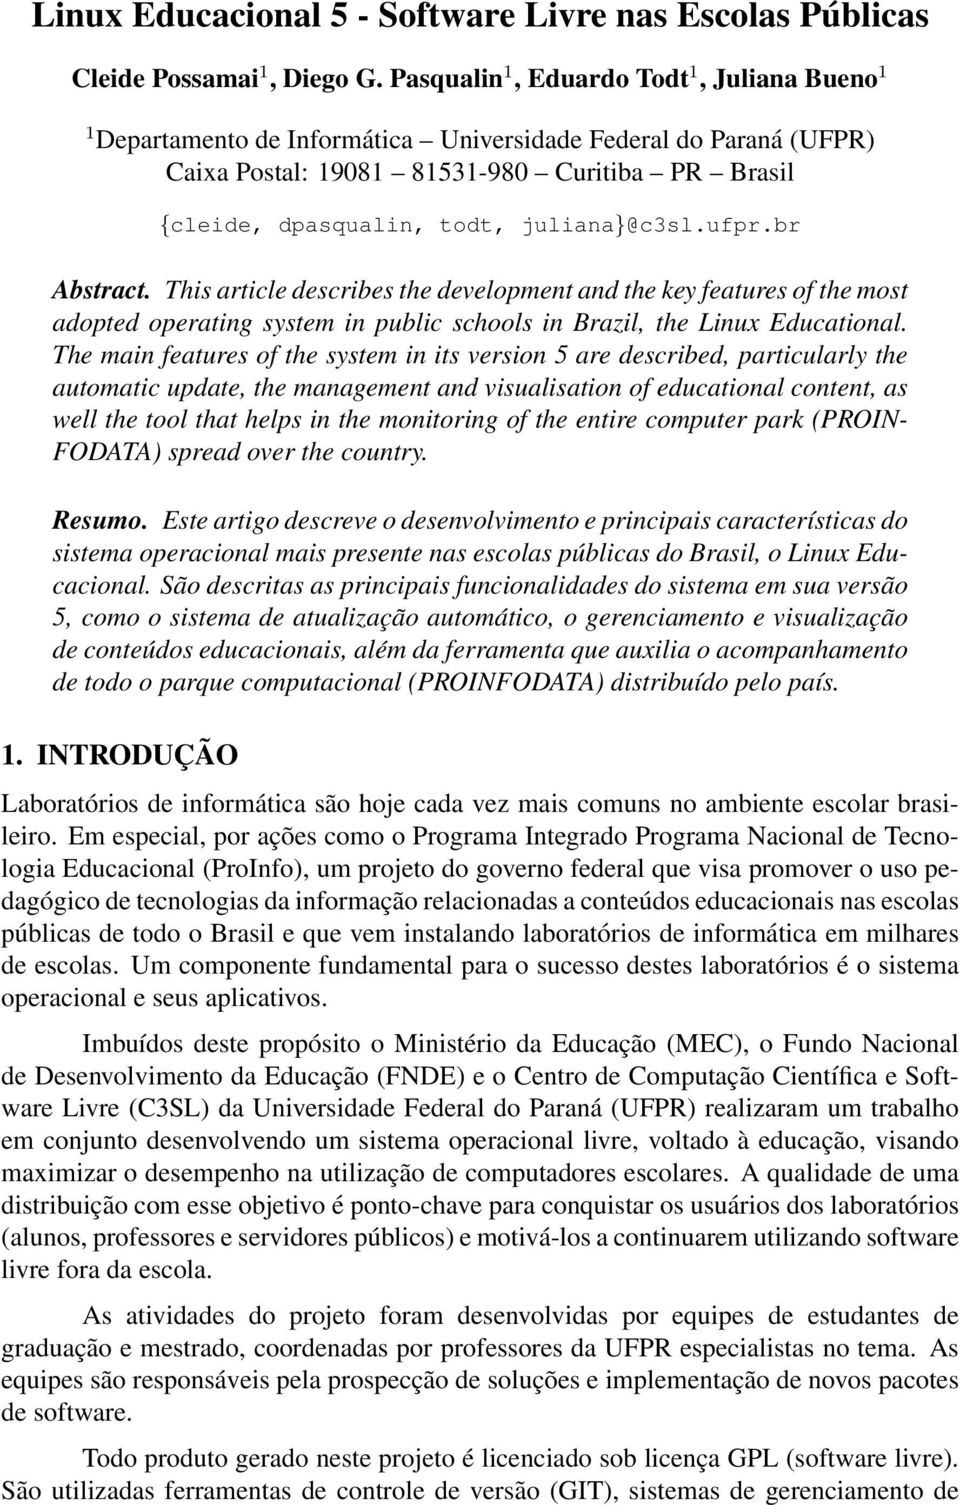 juliana}@c3sl.ufpr.br Abstract. This article describes the development and the key features of the most adopted operating system in public schools in Brazil, the Linux Educational.